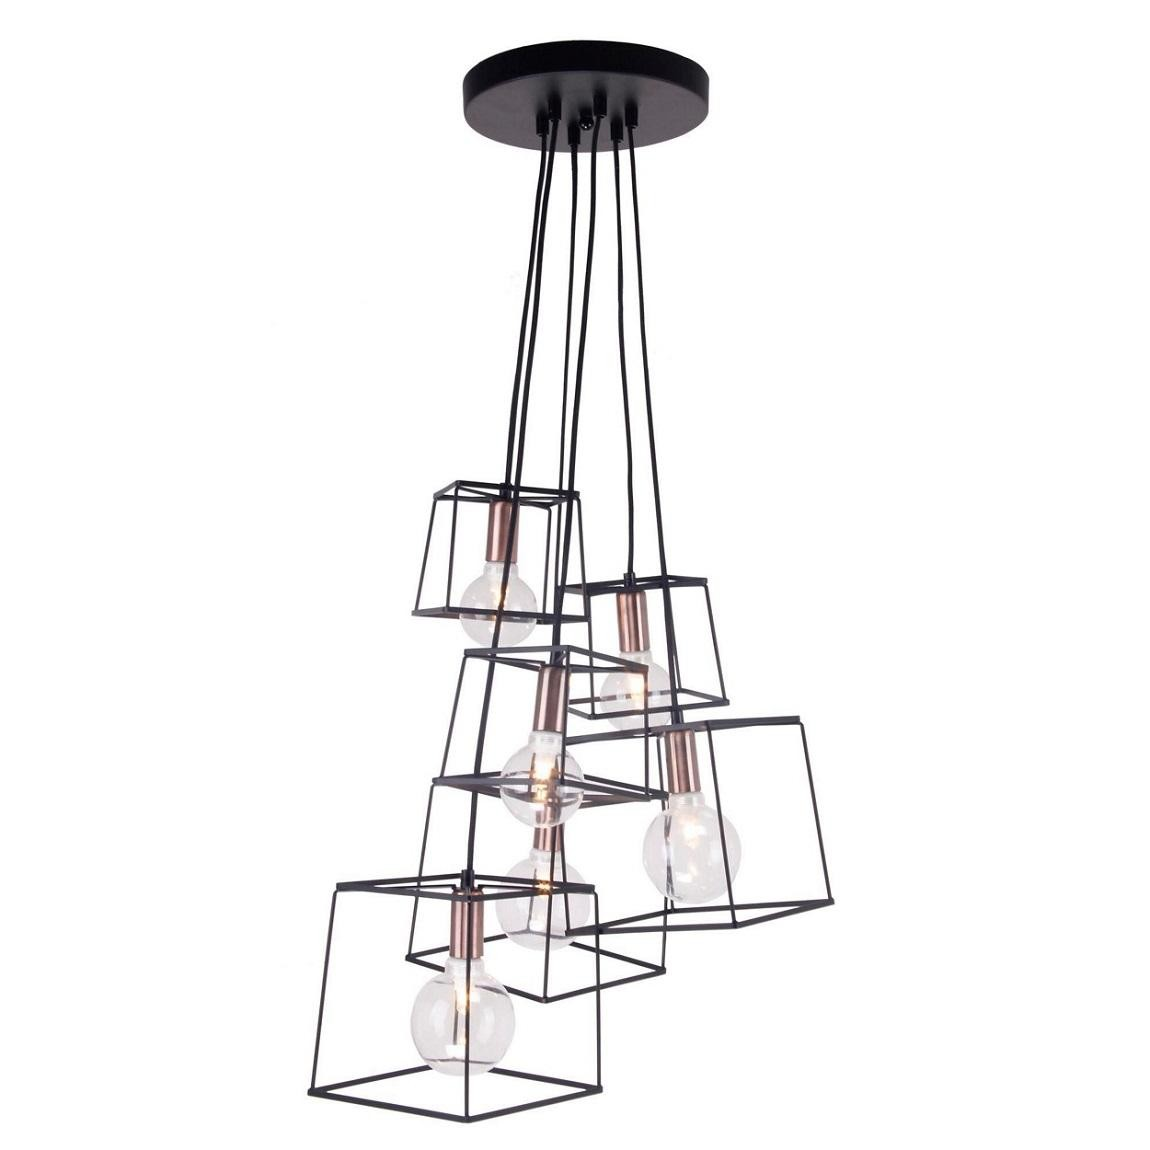 Home-Collection-Harrison-Ceiling-Light.jpg